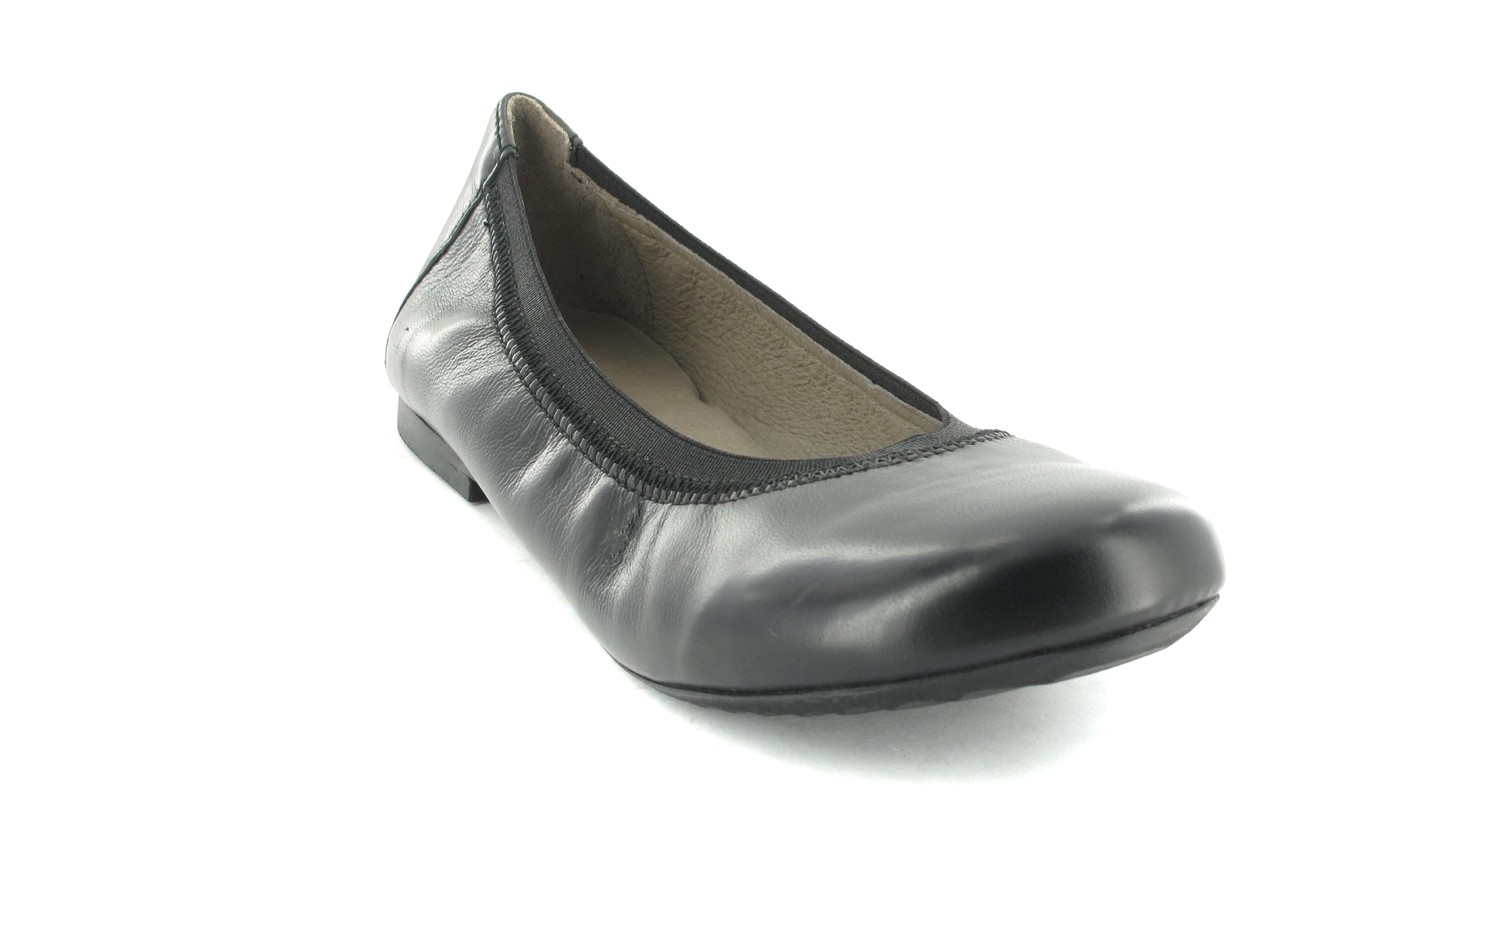 gabor xs damenschuhe ballerinas schuhe in untergr en schwarz gr e 33 ebay. Black Bedroom Furniture Sets. Home Design Ideas